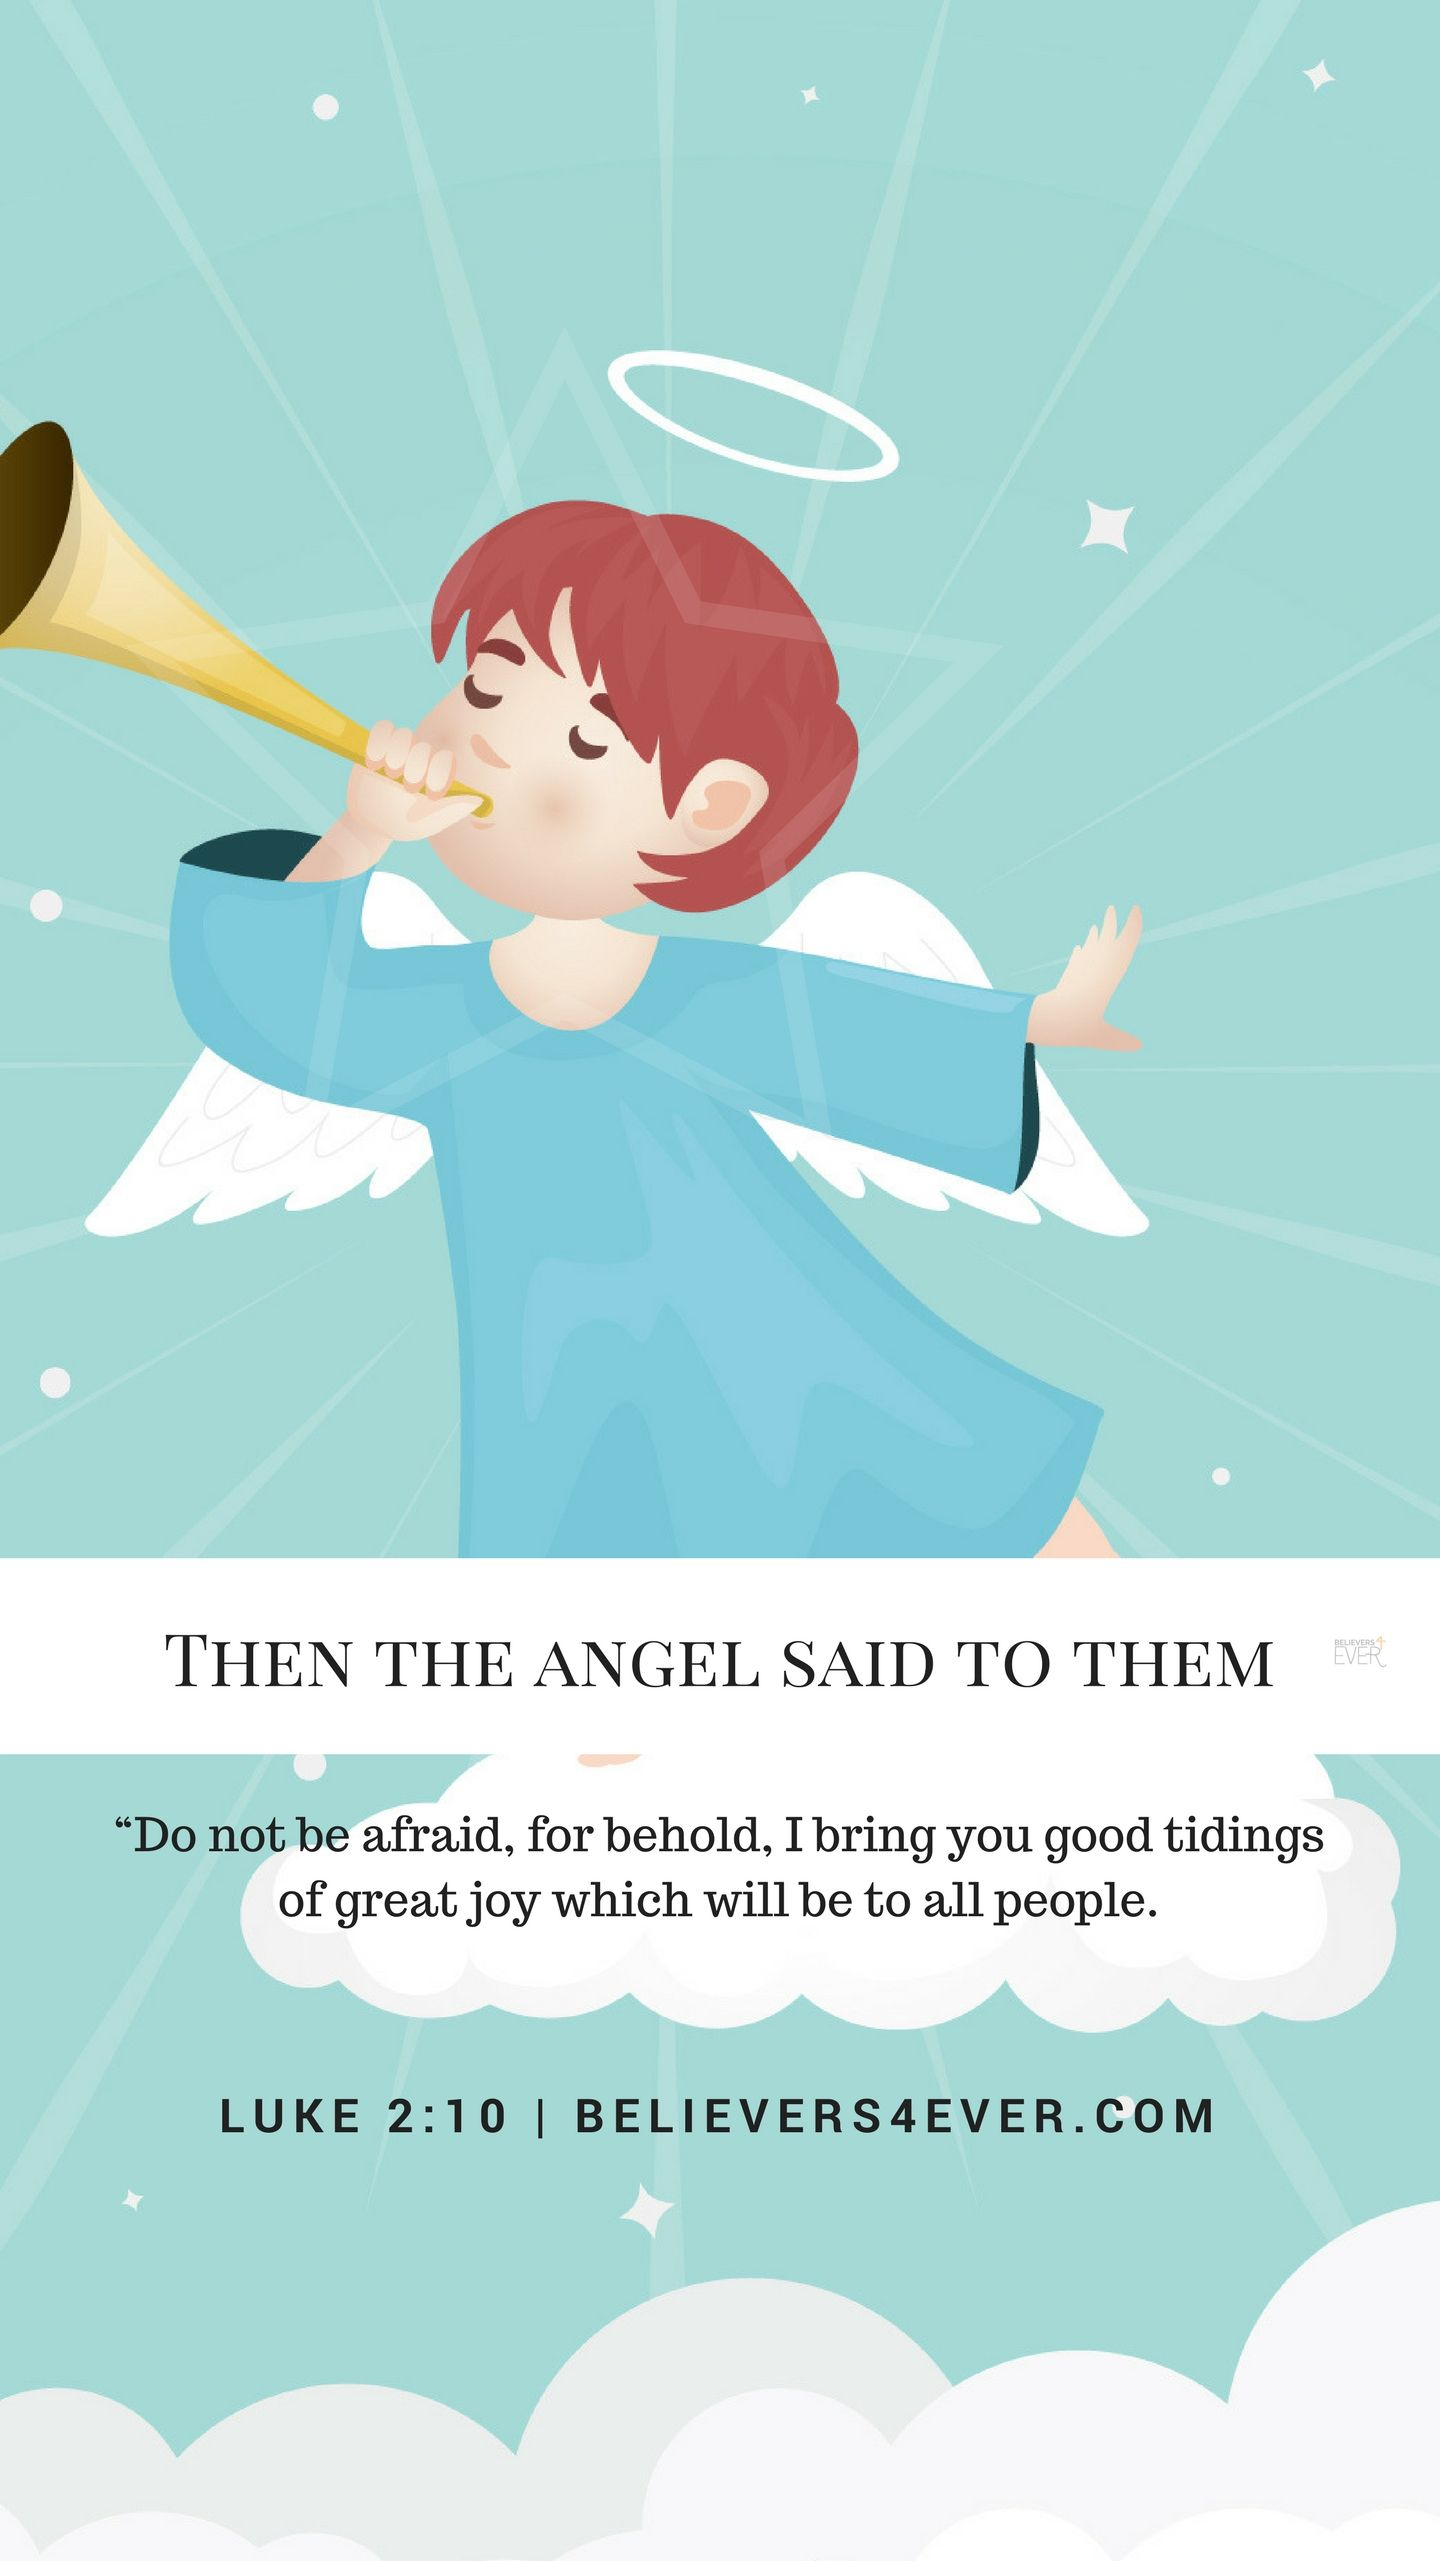 Then the angel said to them - Believers4ever.com | Joy to the world lyrics, Joy to the world ...